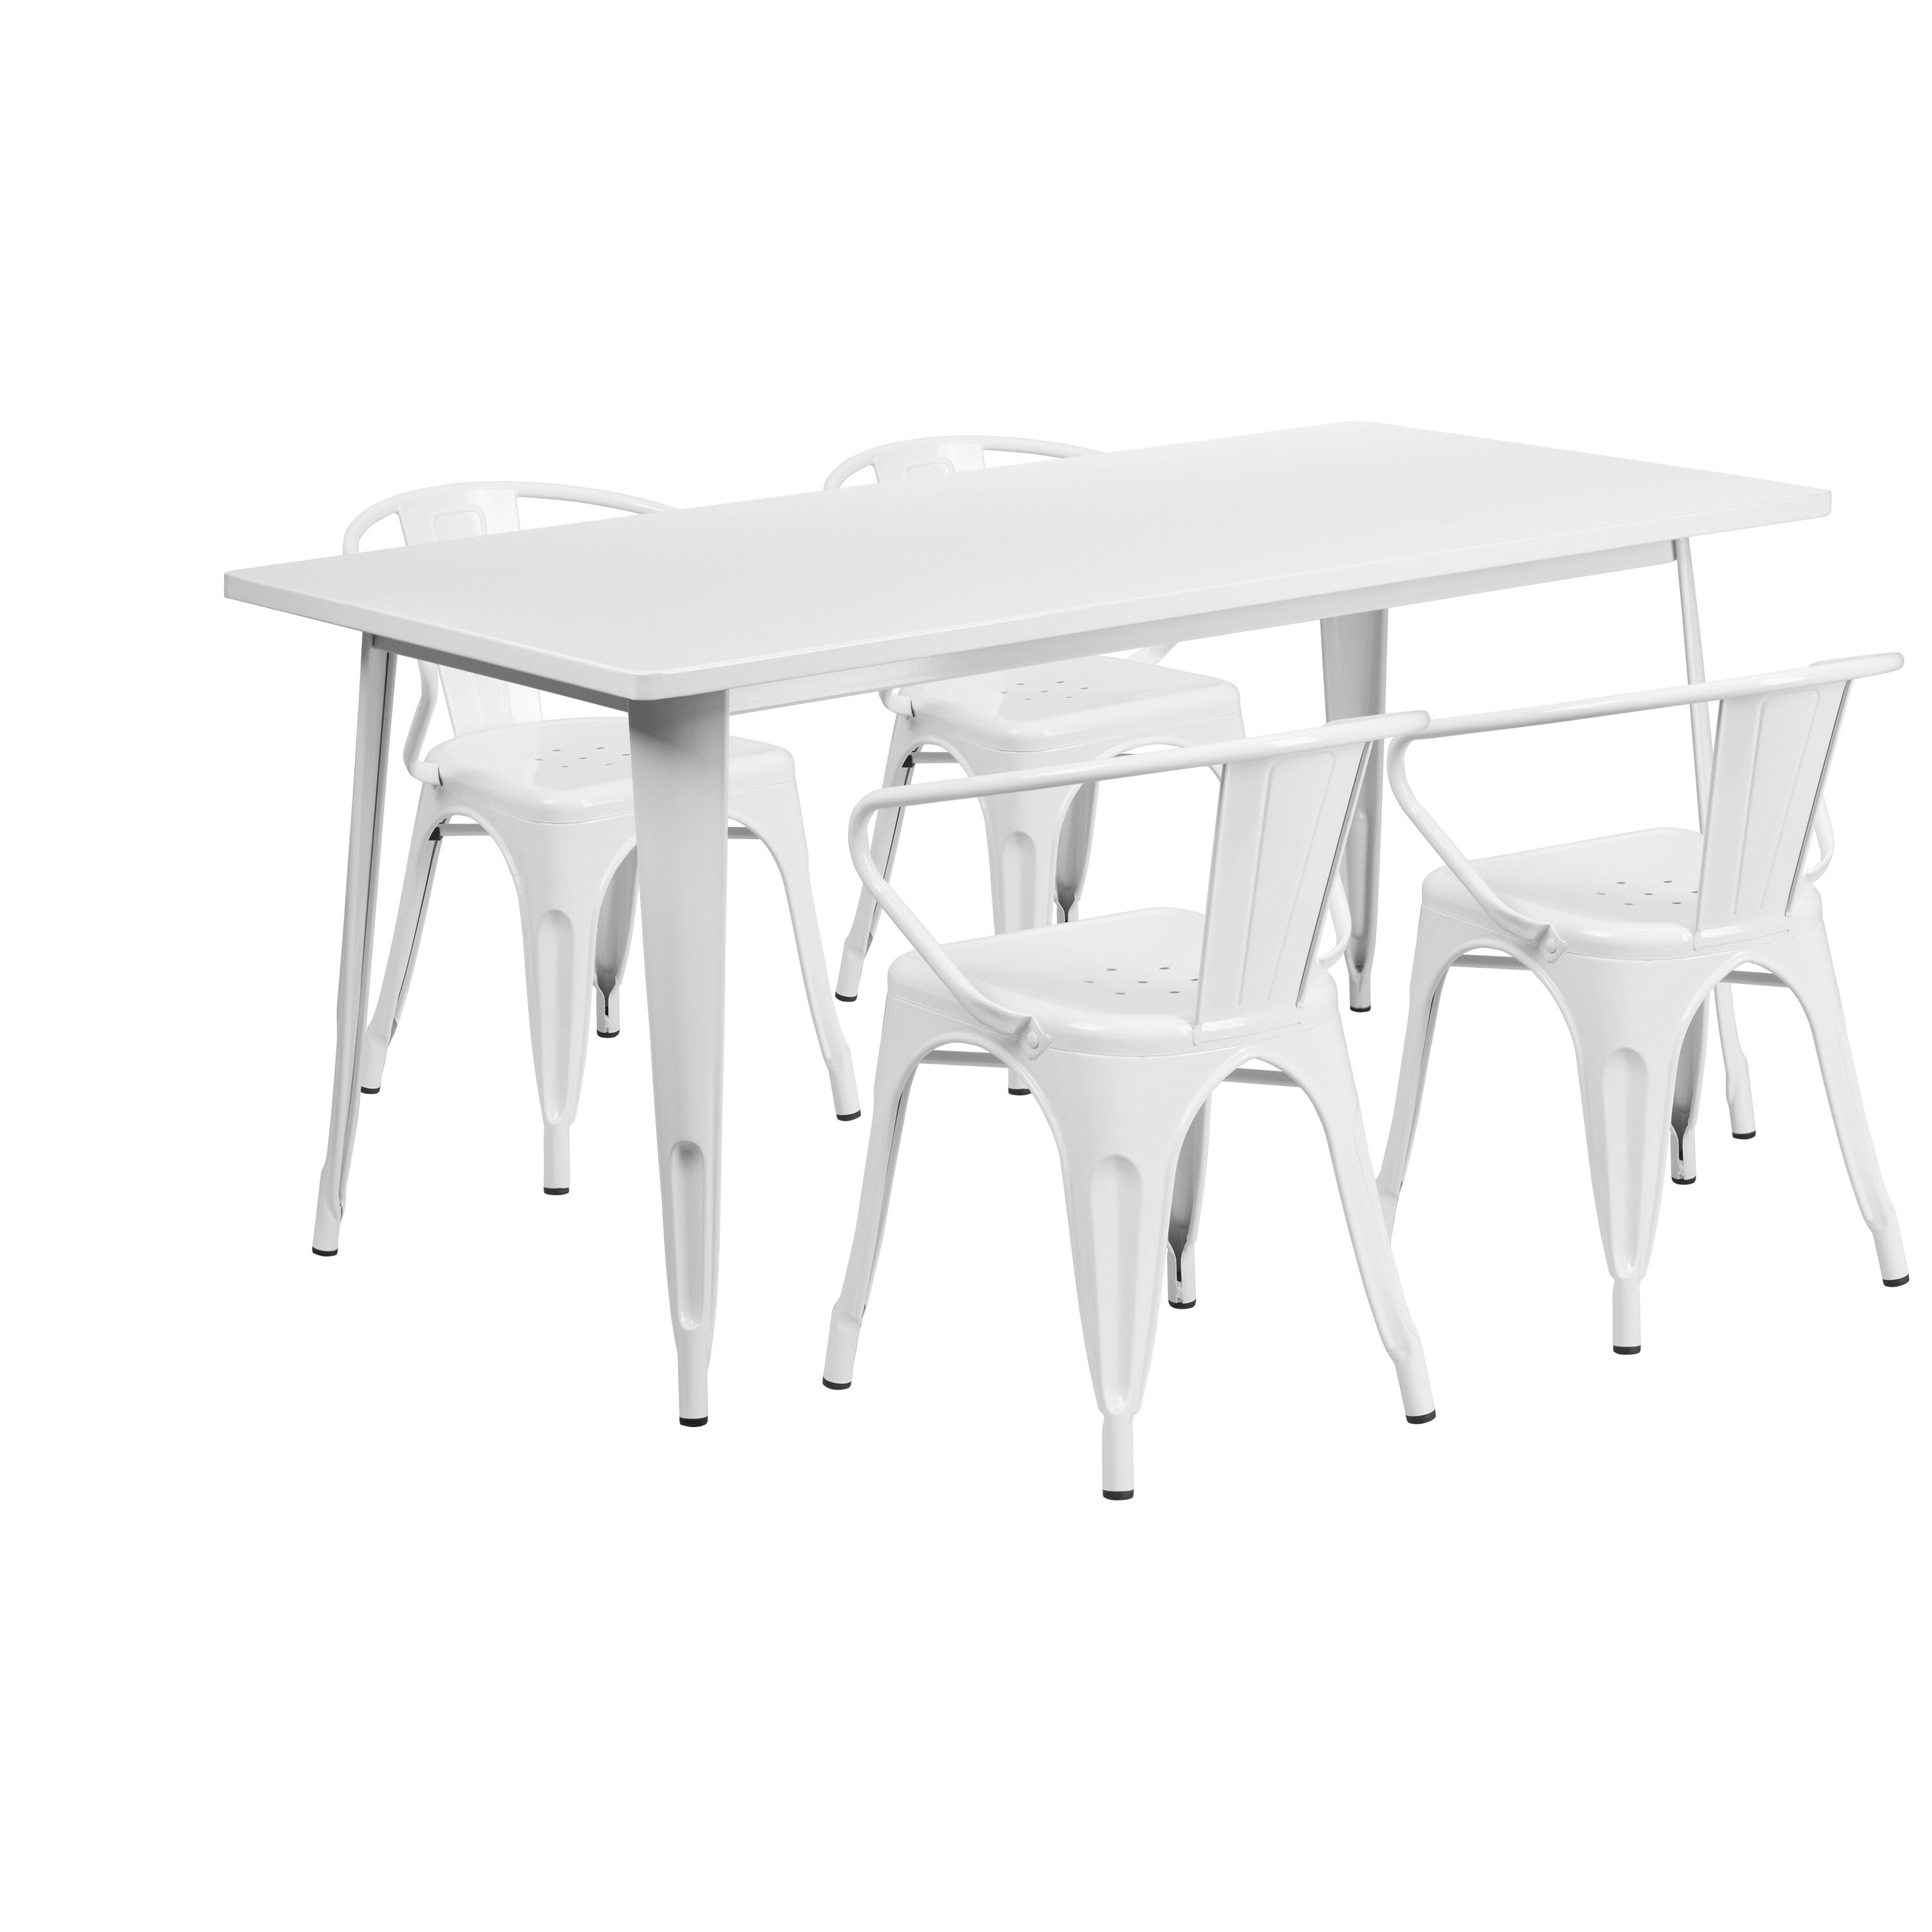 rectangular rubber chair glides covers from wayfair 31 5x63 white metal table set et ct005 4 70 wh gg stackchairs4less com images